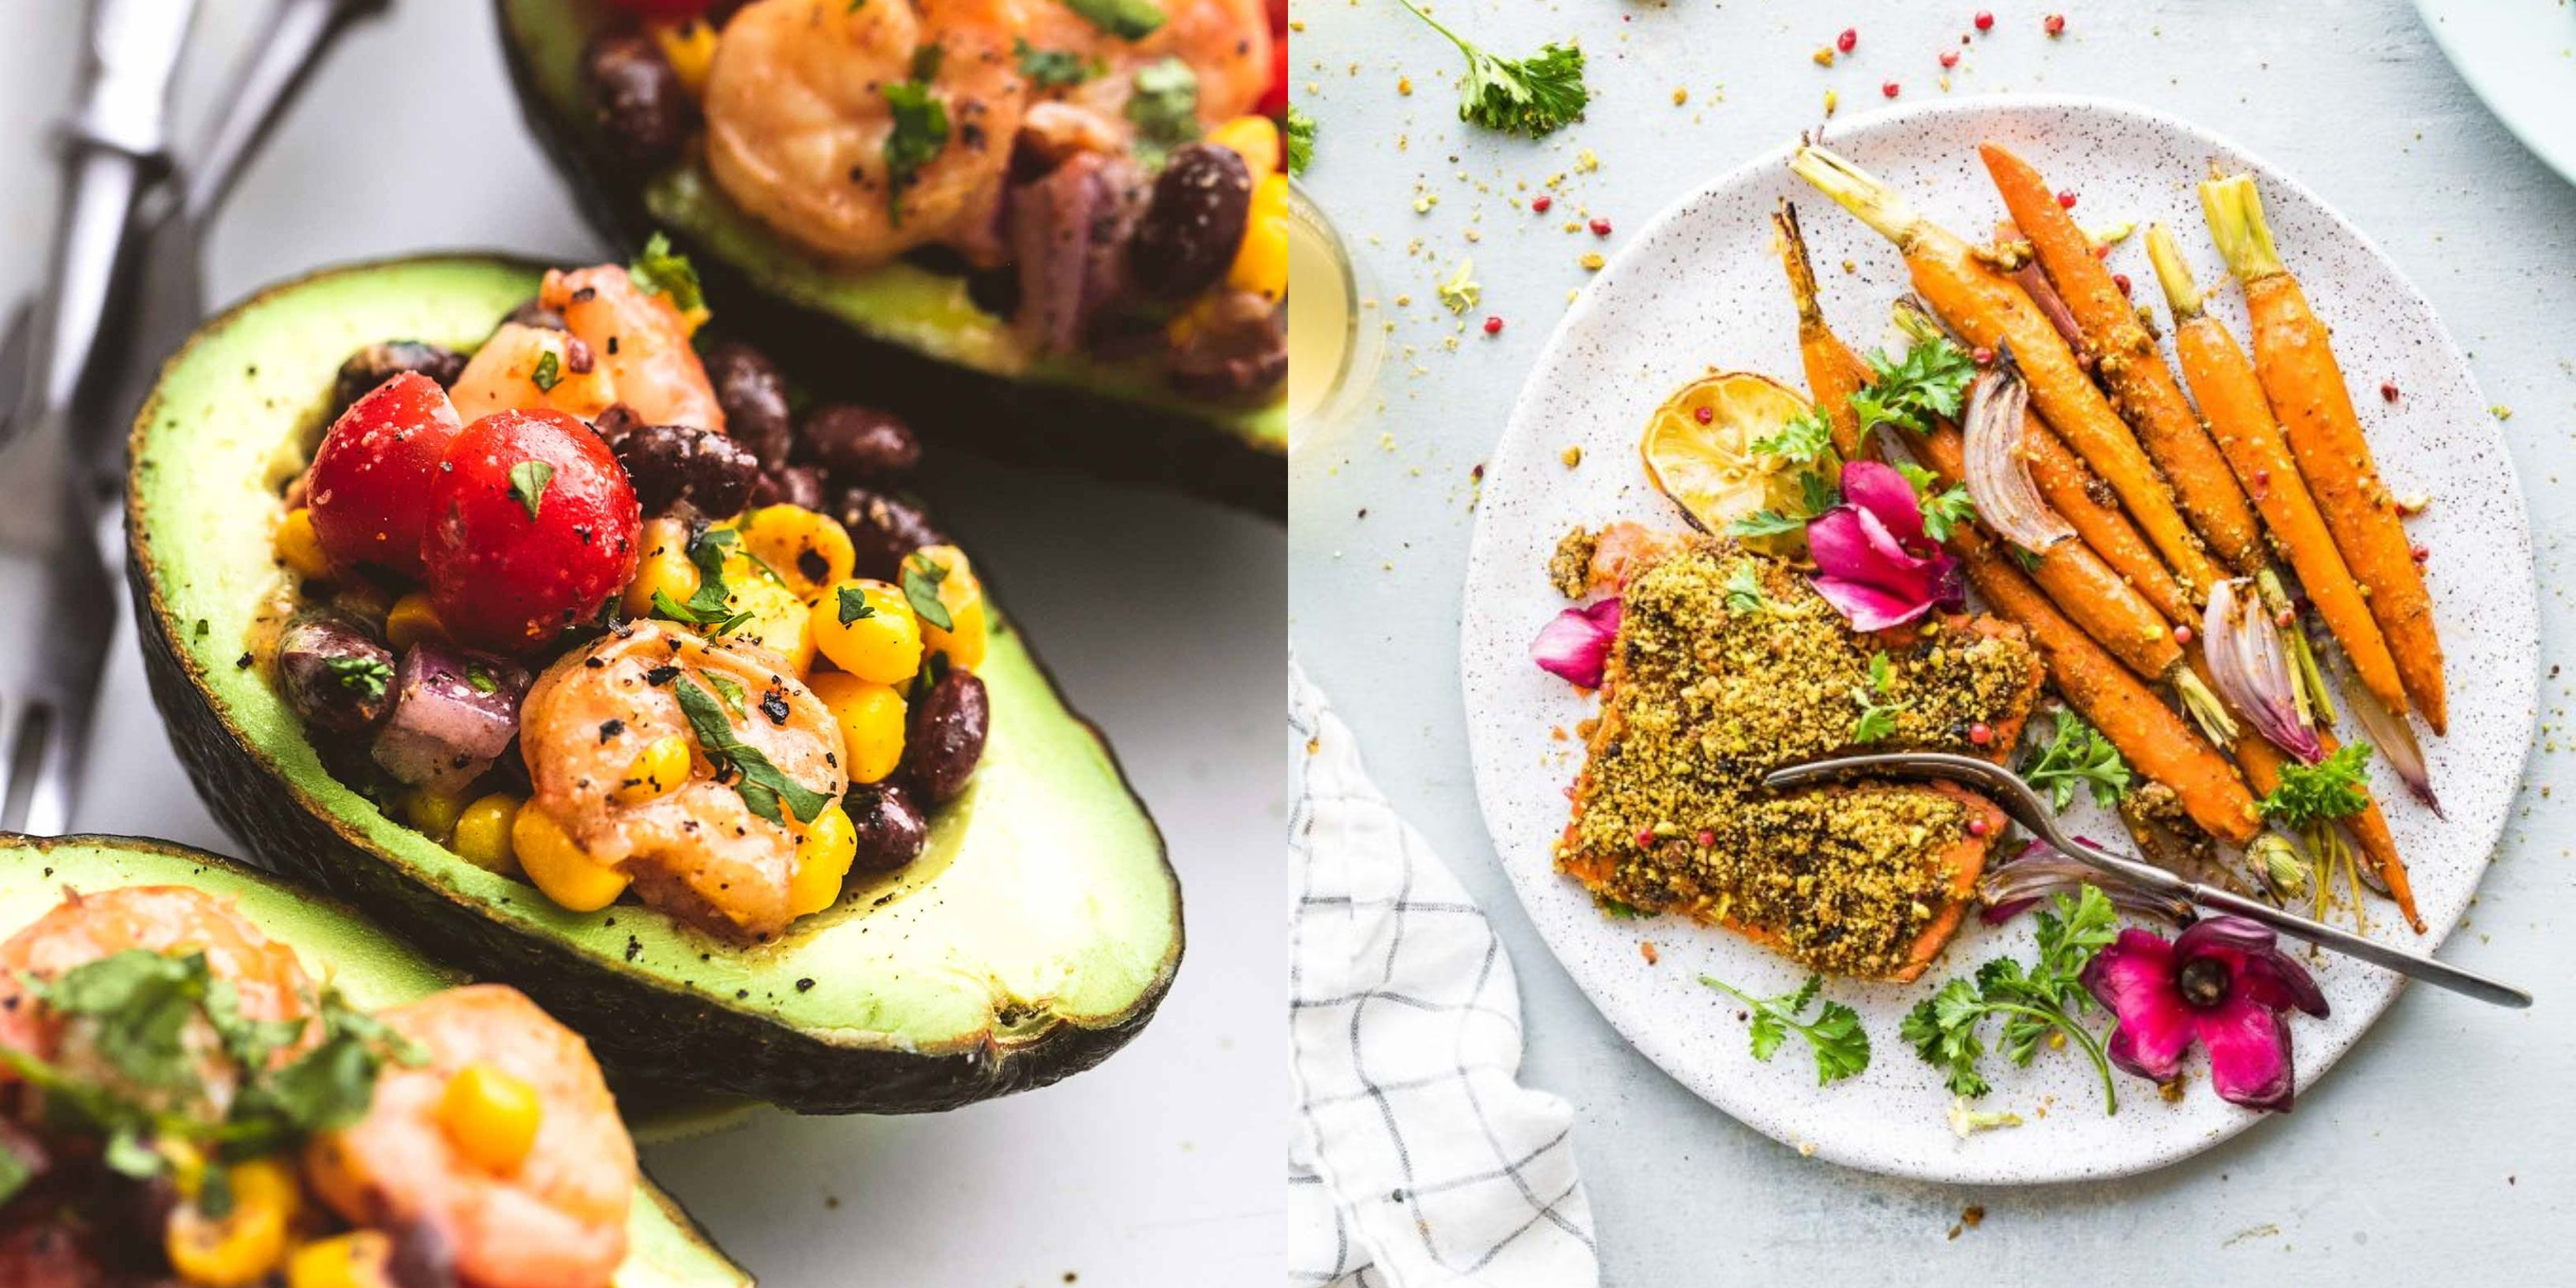 20 Good Friday Meals - Meatless Dinner Ideas for Good Friday